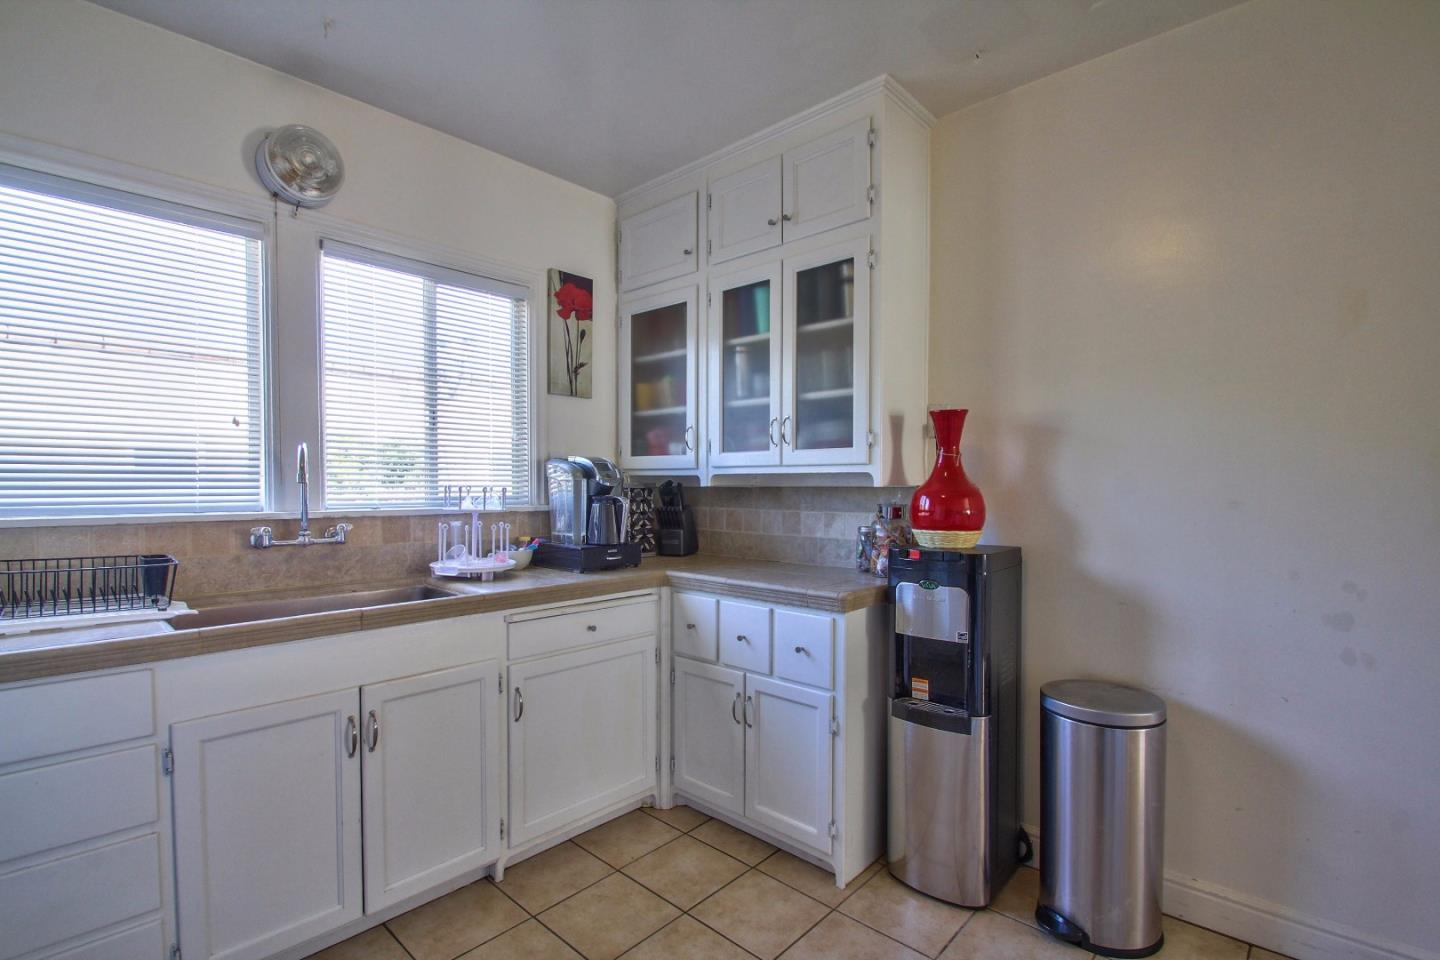 Additional photo for property listing at 14 Orange Drive  Salinas, Kalifornien 93901 Vereinigte Staaten